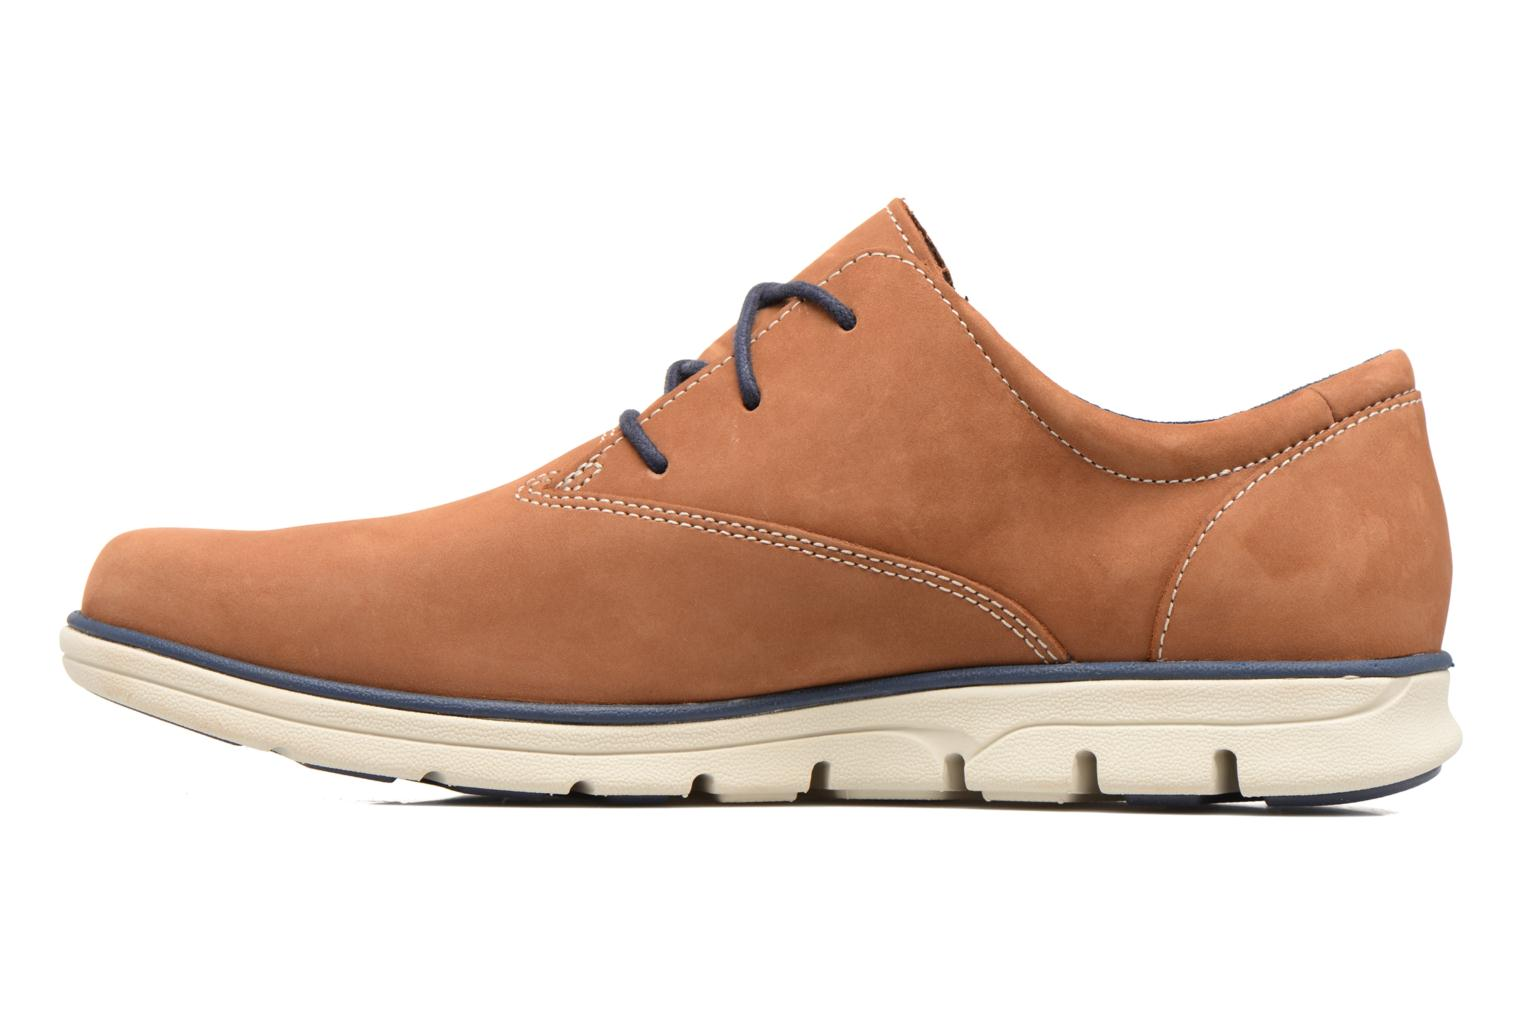 Chaussures à lacets Timberland Bradstreet PT Oxford Beige vue face